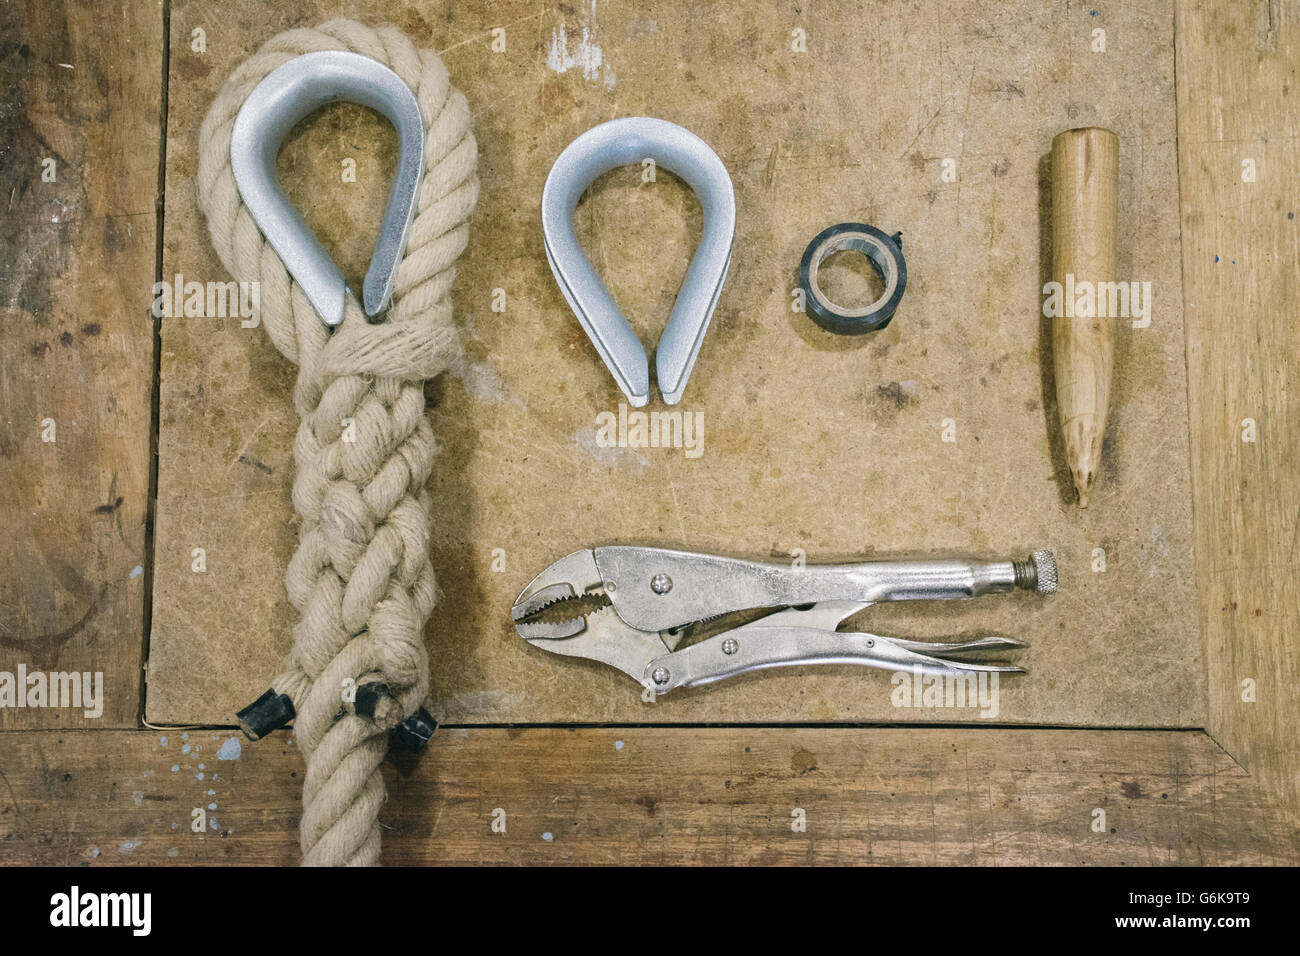 Espartero tools needed to make a rope - Stock Image